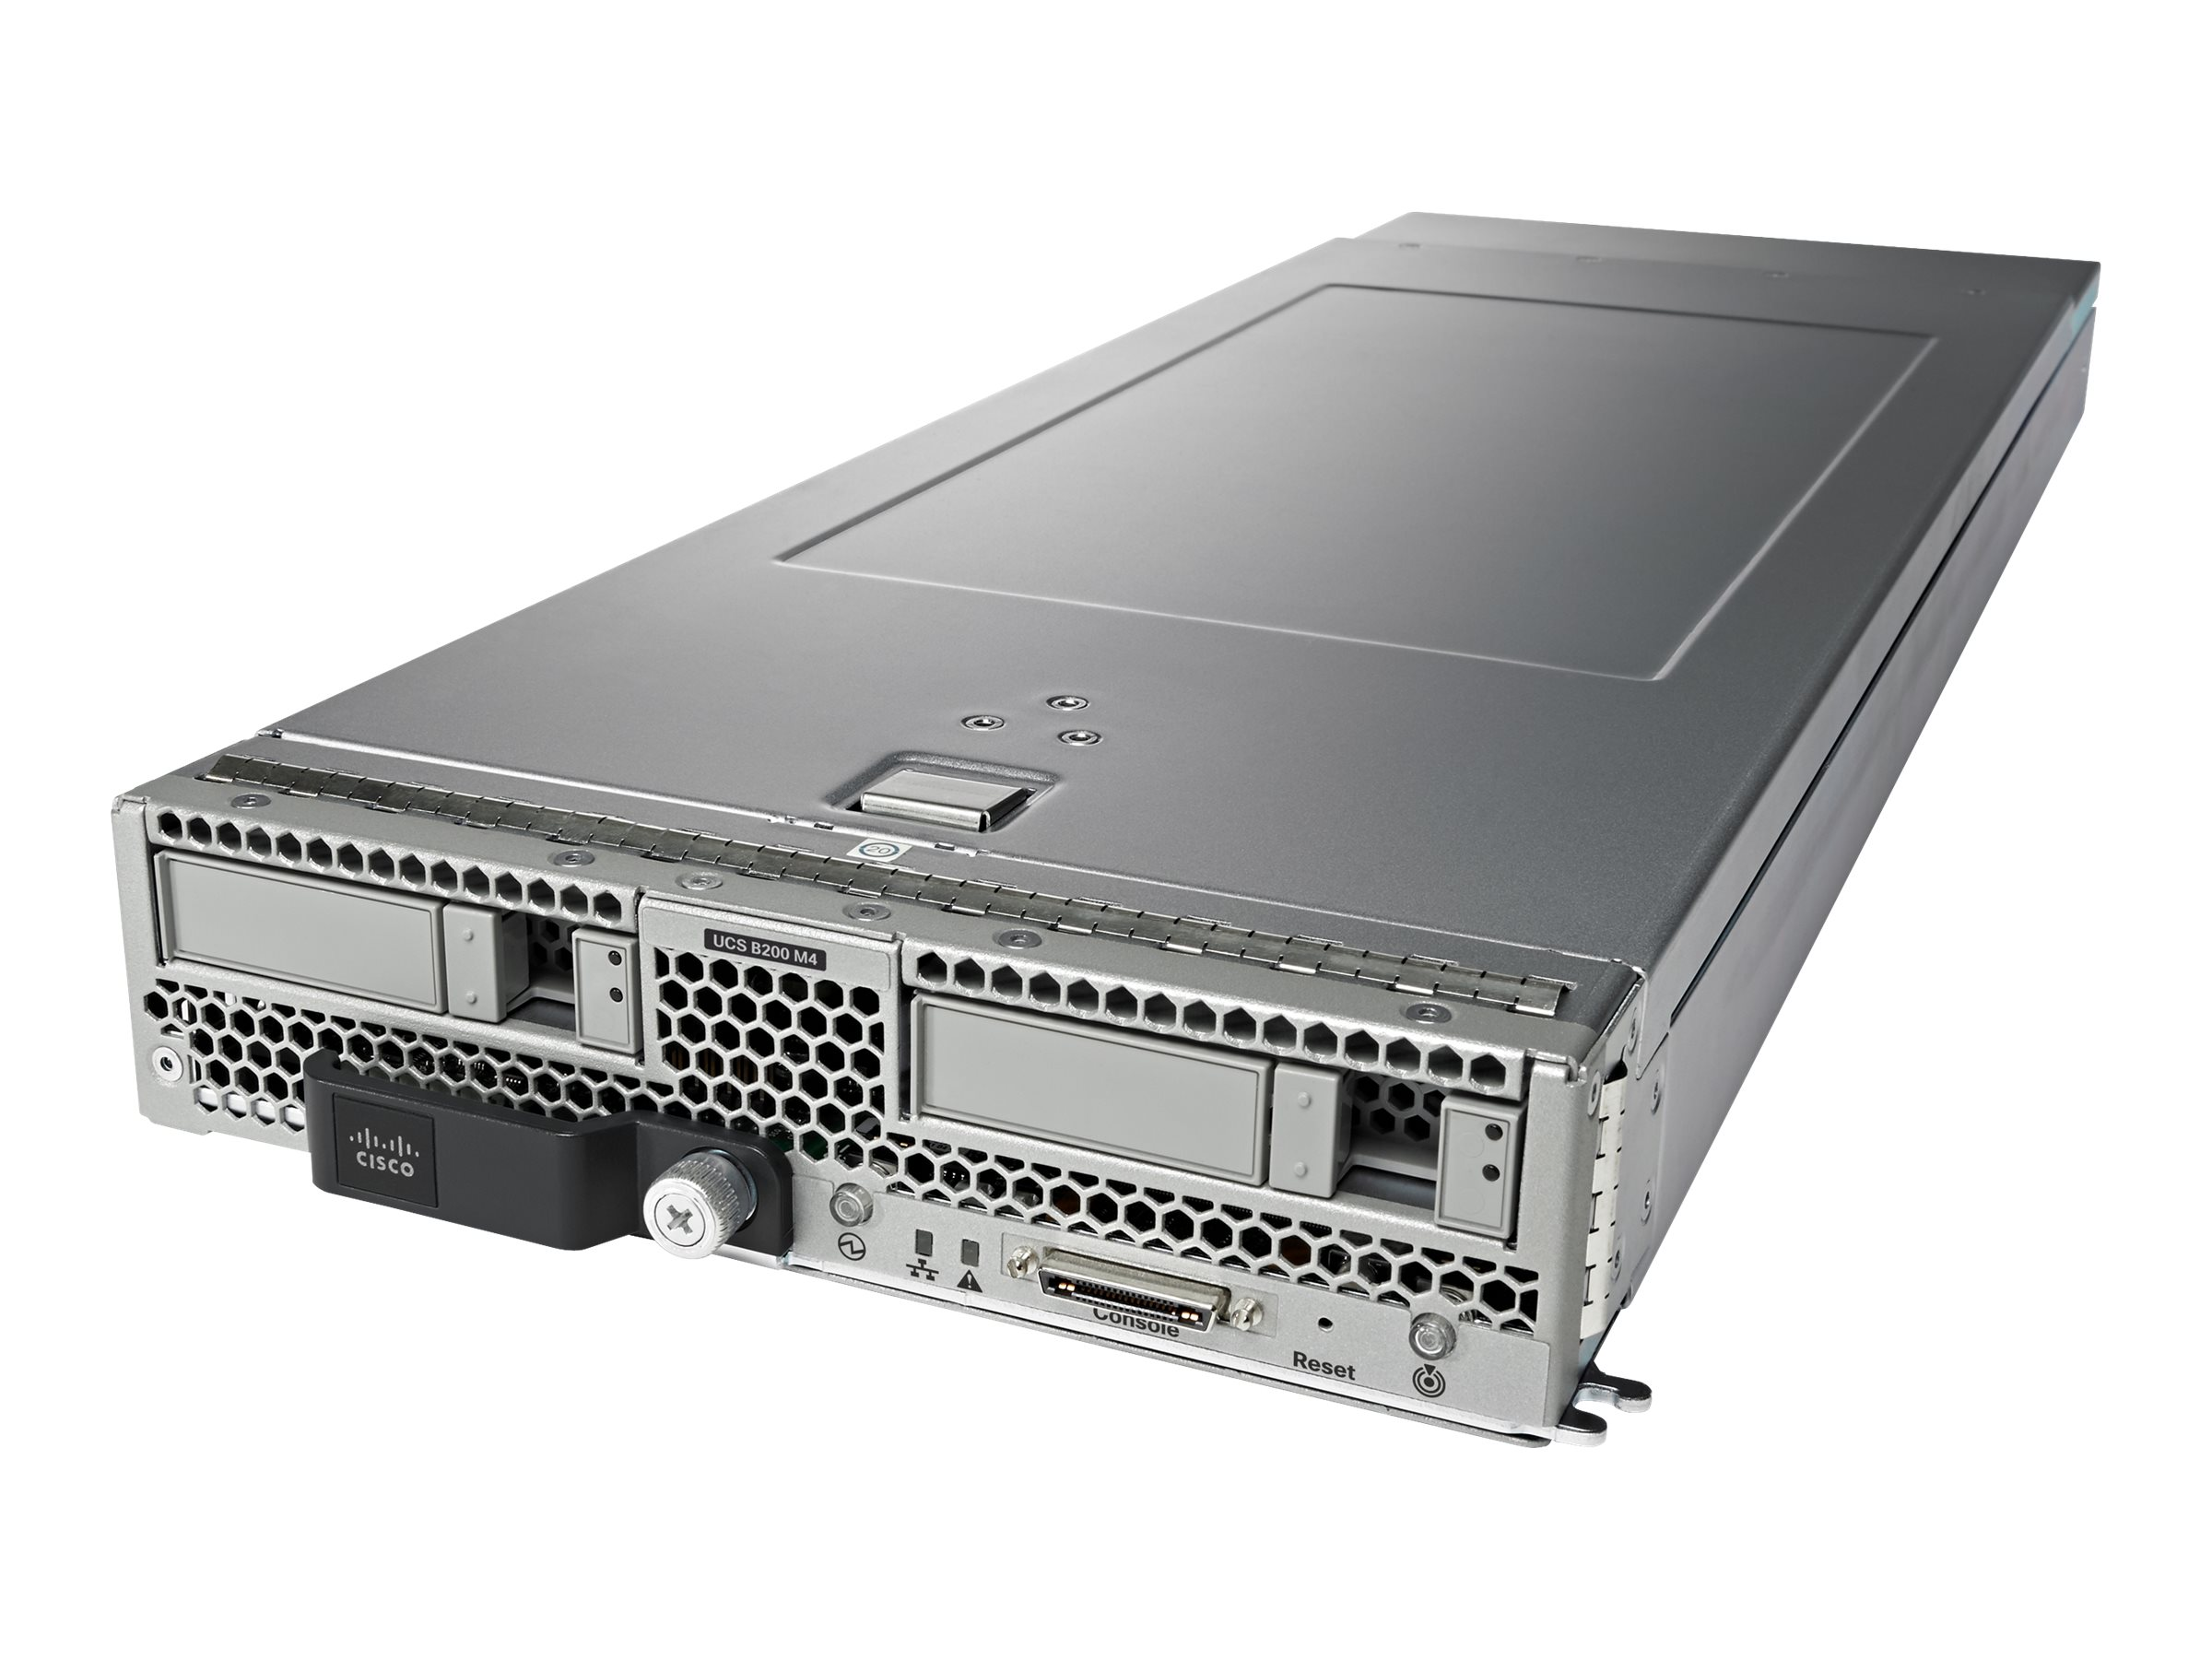 Cisco UPS Smart Play Select B200 M4 High Core 1 Blade (2x)Xeon E5-2698 v3 256GB VIC1340, UCS-SPL-B200M4-C1, 21326341, Servers - Blade